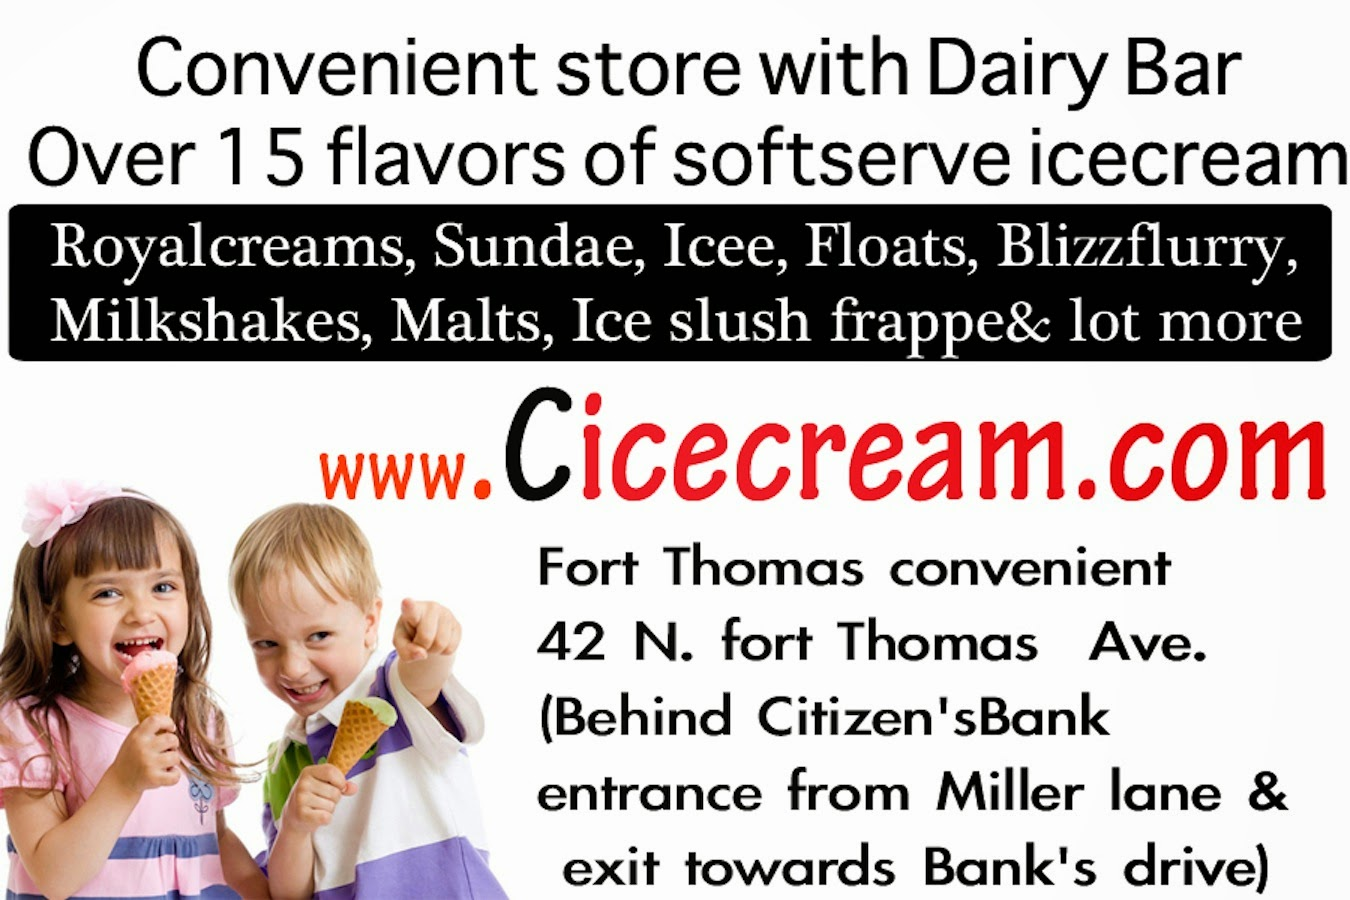 NEW! Convenient Dairy Bar